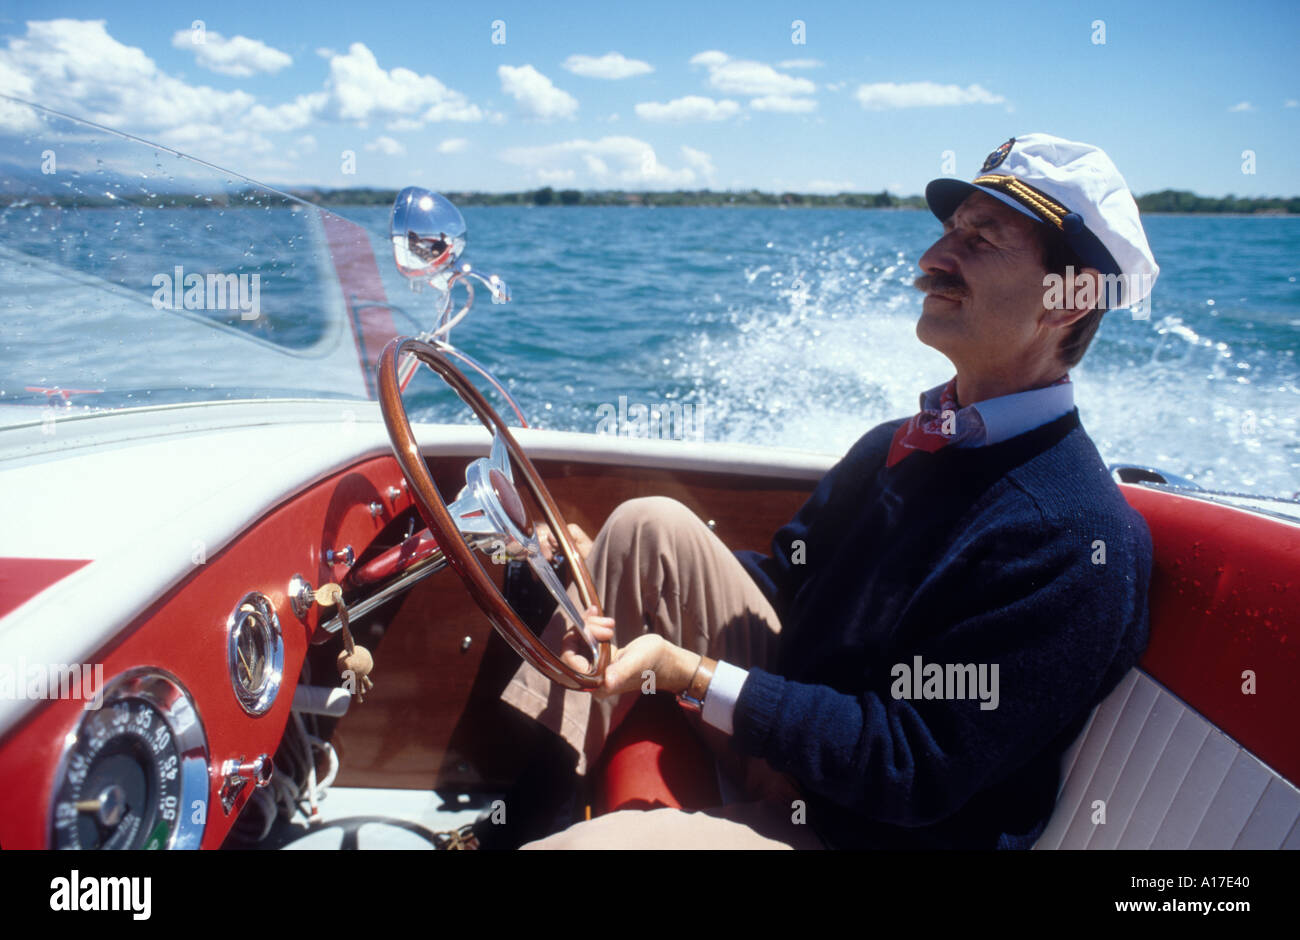 Luxury Runabout Stock Photos & Luxury Runabout Stock Images